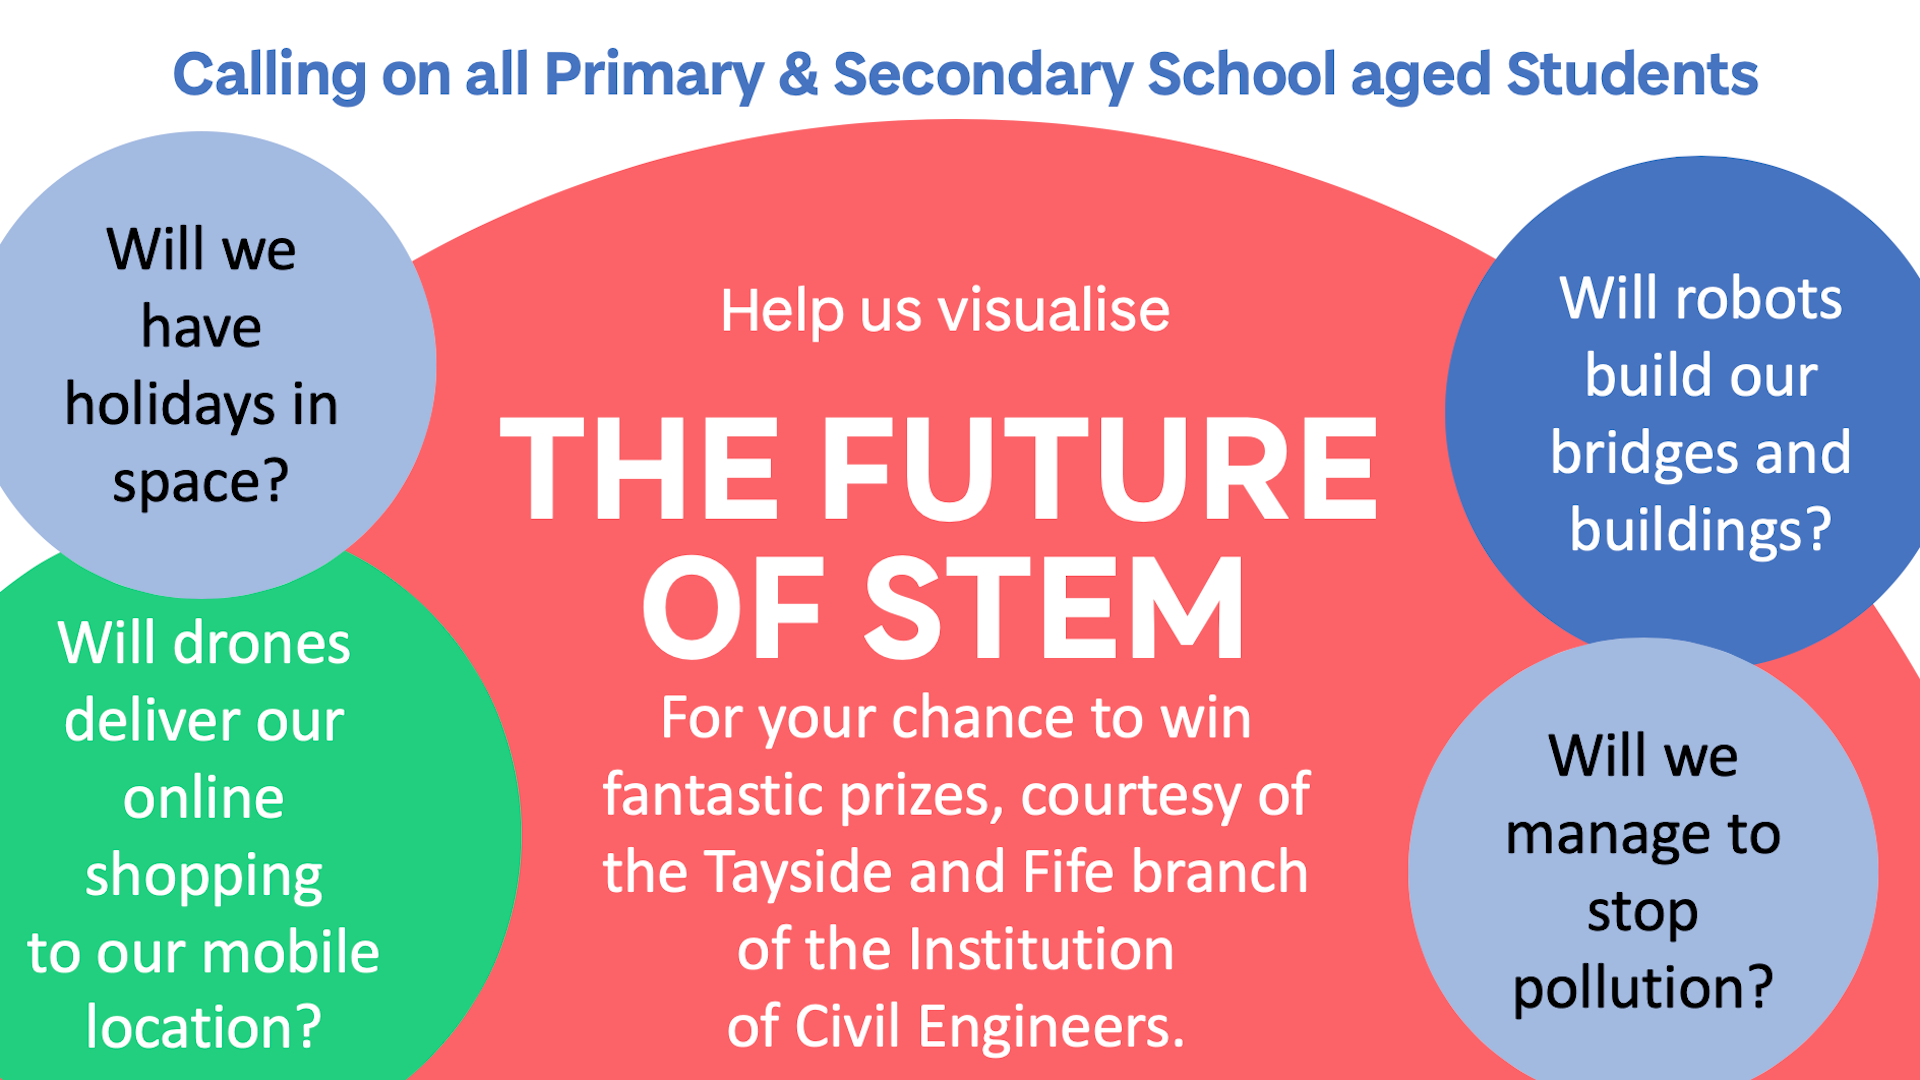 Poster: Calling on all Primary & Secondary School aged Students, Help us visualise THE FUTURE OF STEM. Will we have holidays in space? Will robots build our bridges and buildings? Will drones deliver our online shopping to our mobile location? Will we manage to stop pollution? For your chance to  win fantastic prizes, courtesy of the Tayside and Fife branch of the Institution of Civil Engineers.  Design a poster describing how science, technology, engineering and maths could change the world we live in.